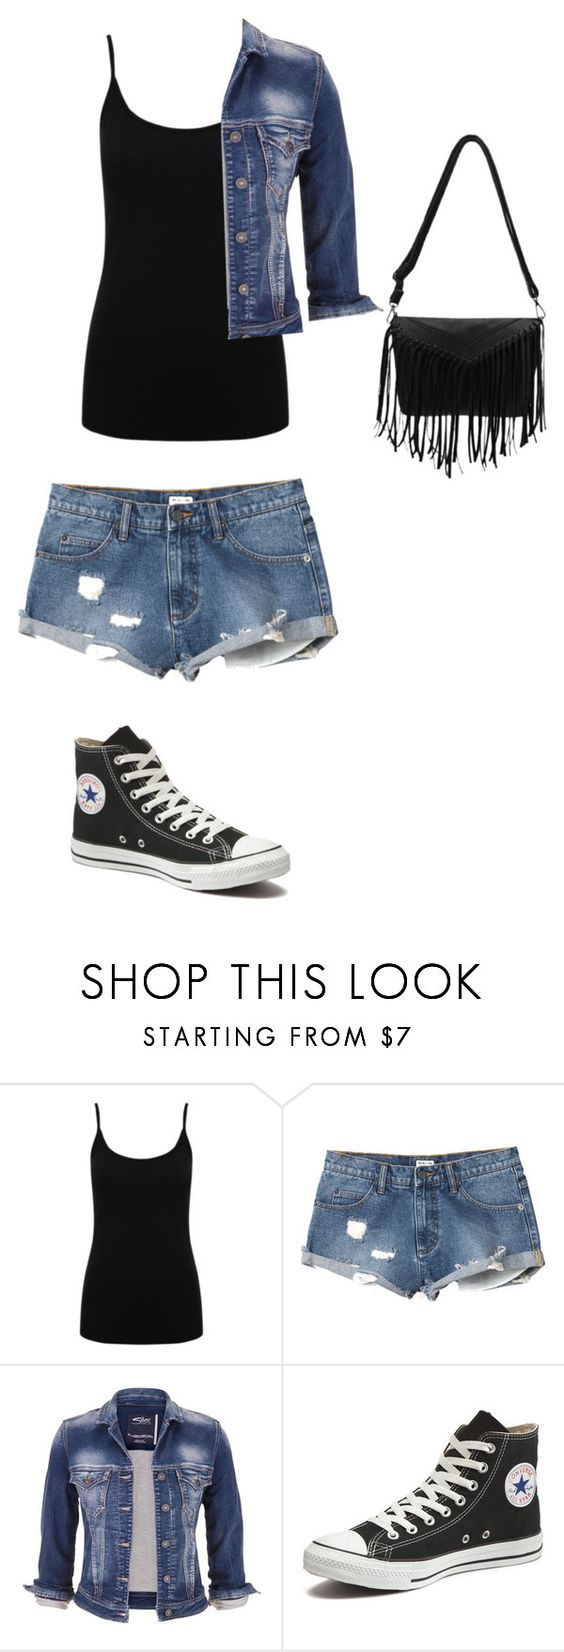 """Getting ready for a day out with Austin"" by anoai ❤ liked on Polyvore featuring M&Co, RVCA, maurices and Converse"